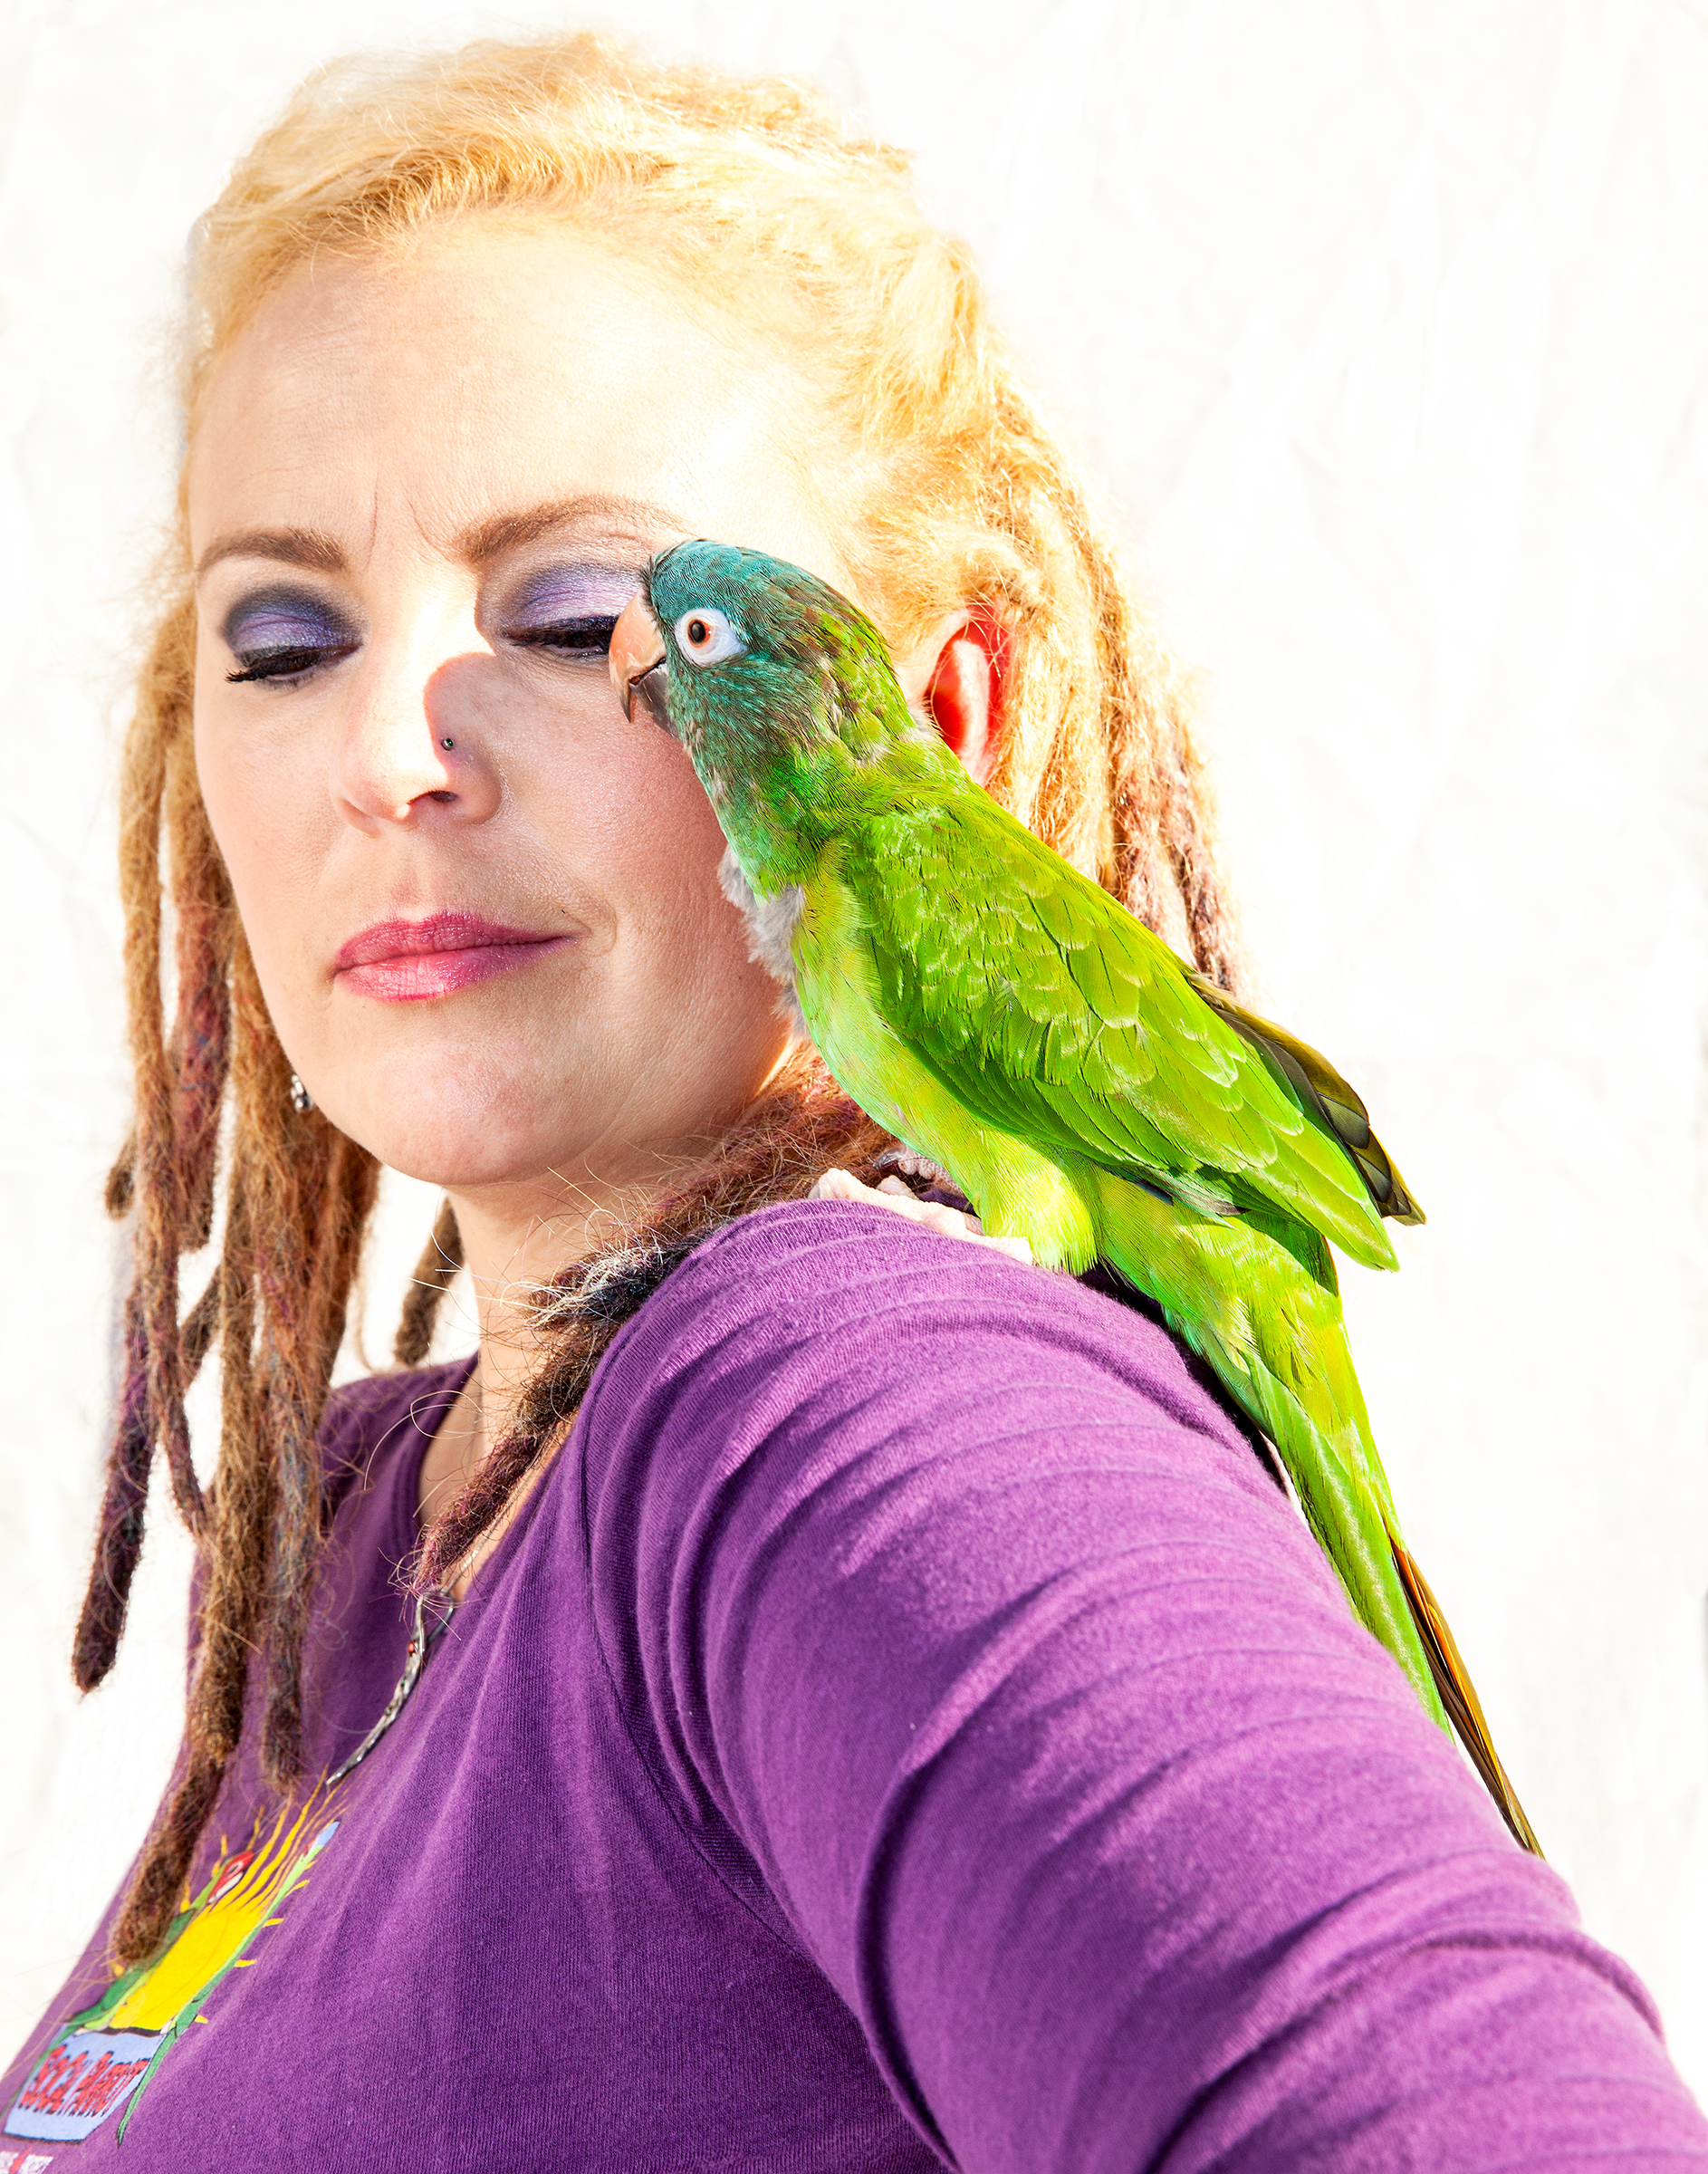 Since 2007 Durham (with a Blue-crowned Parakeet) has opened her home to parrots suffering from various injuries, including electrocution, pellet-gun wounds, and broken wings. Tom Fowlks